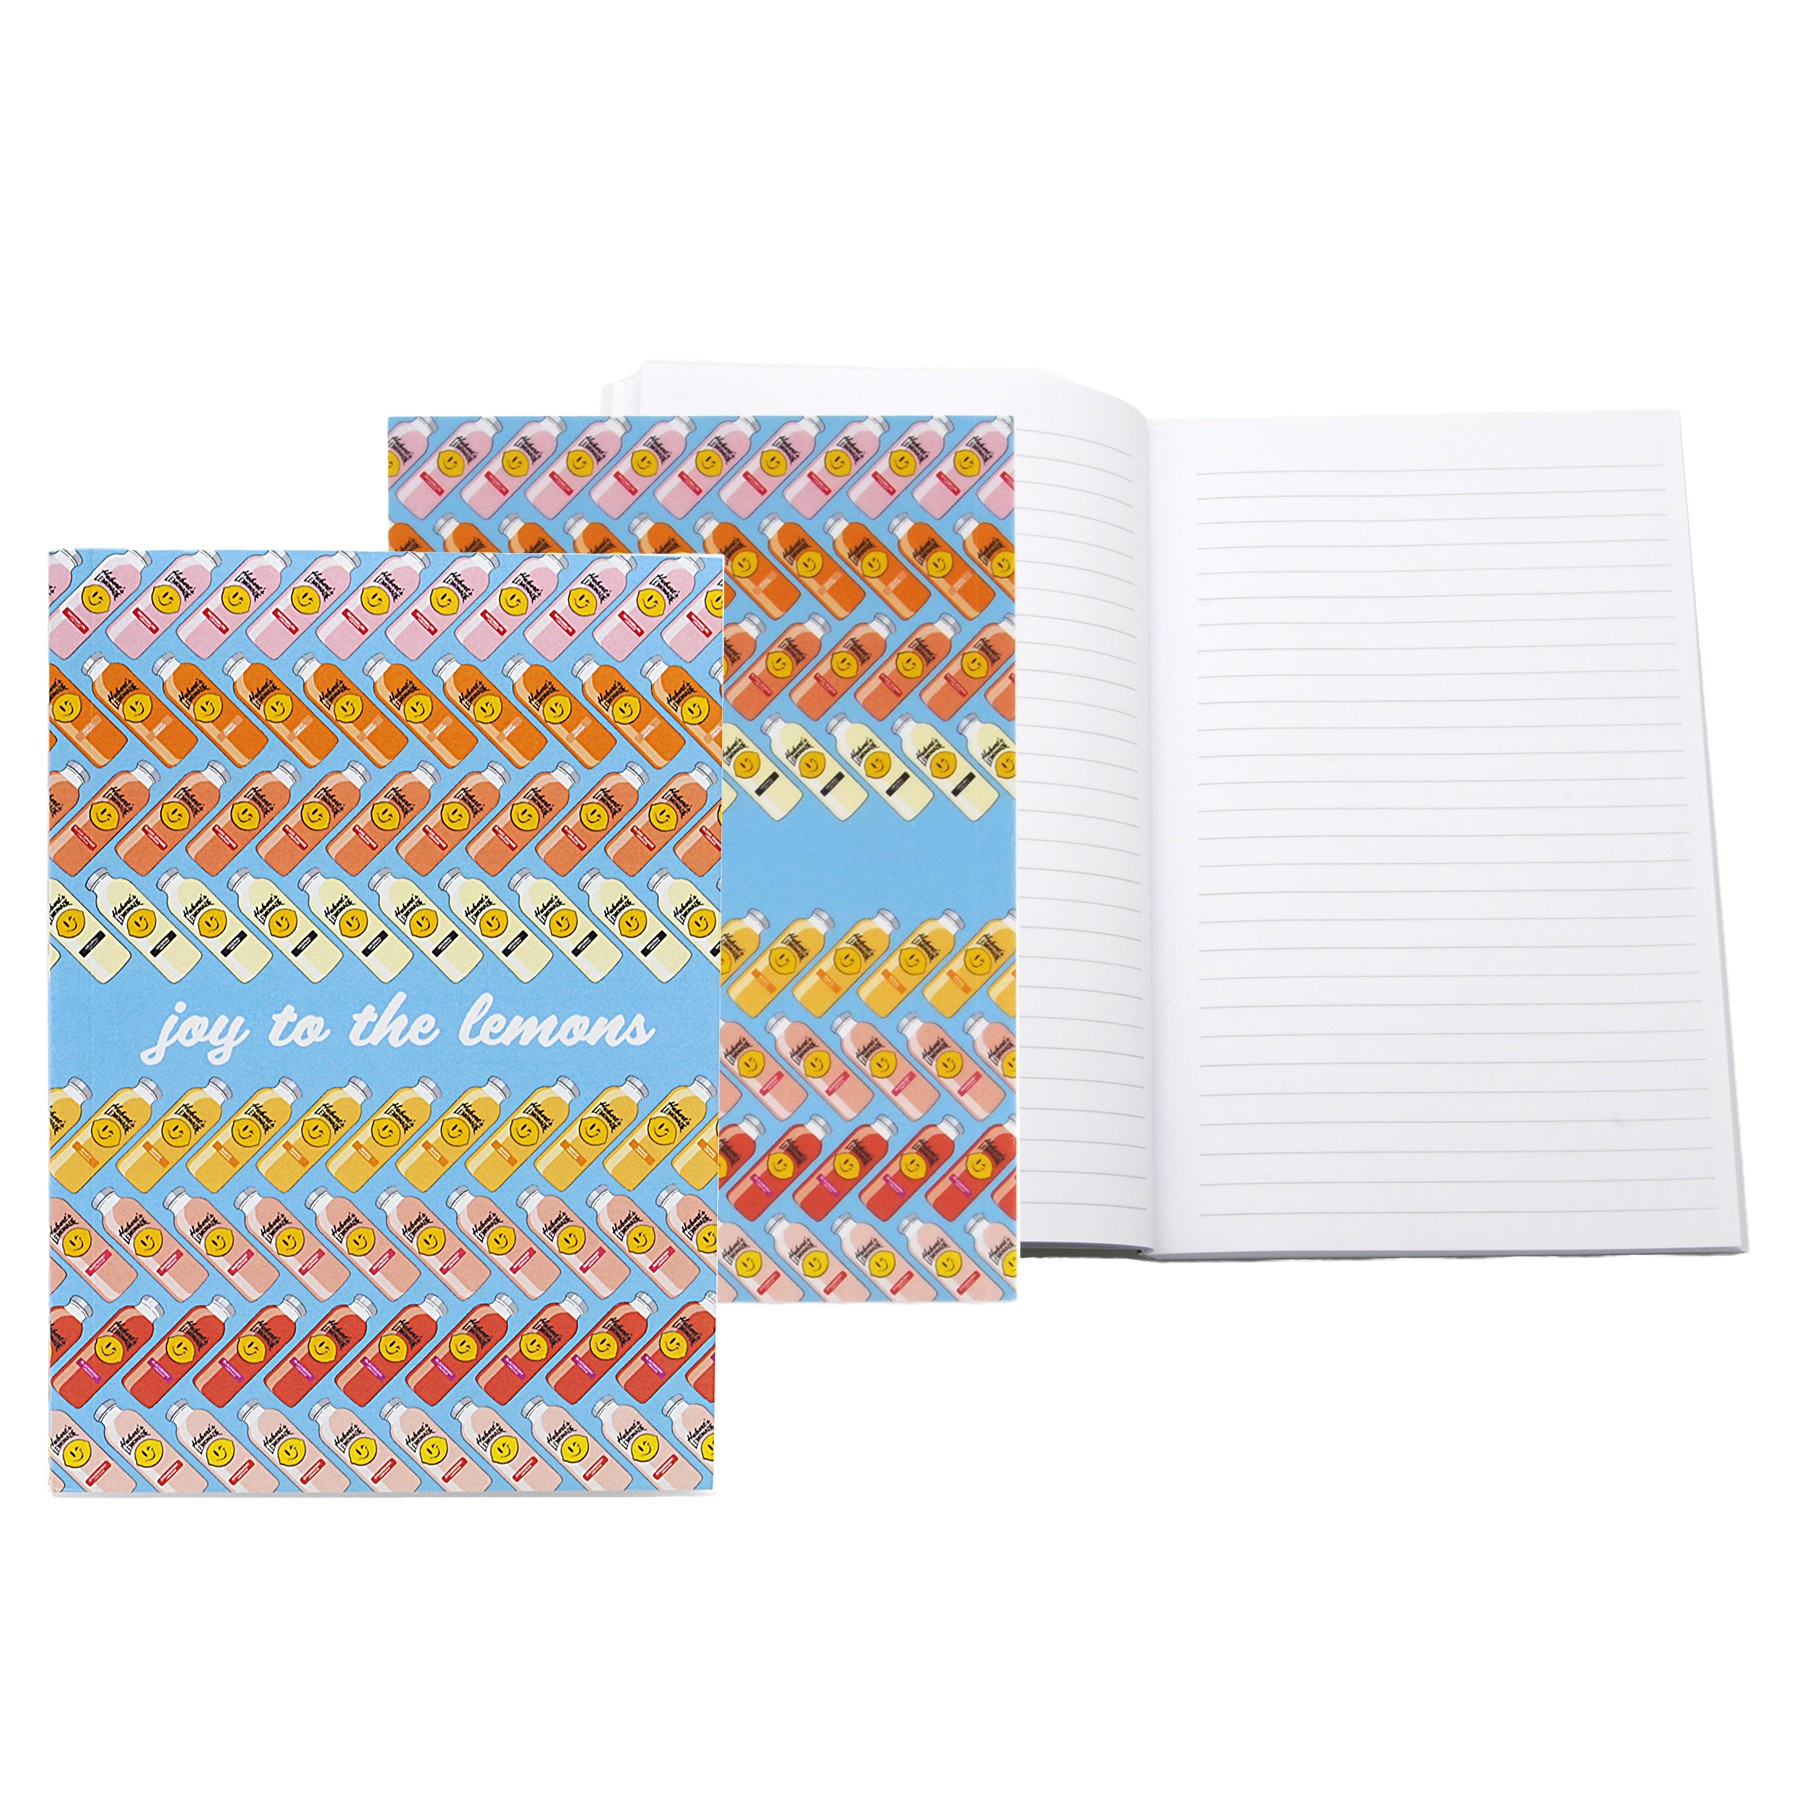 "Value Full Color Perfect Bound Journals - 5.5"" x 8.5"""